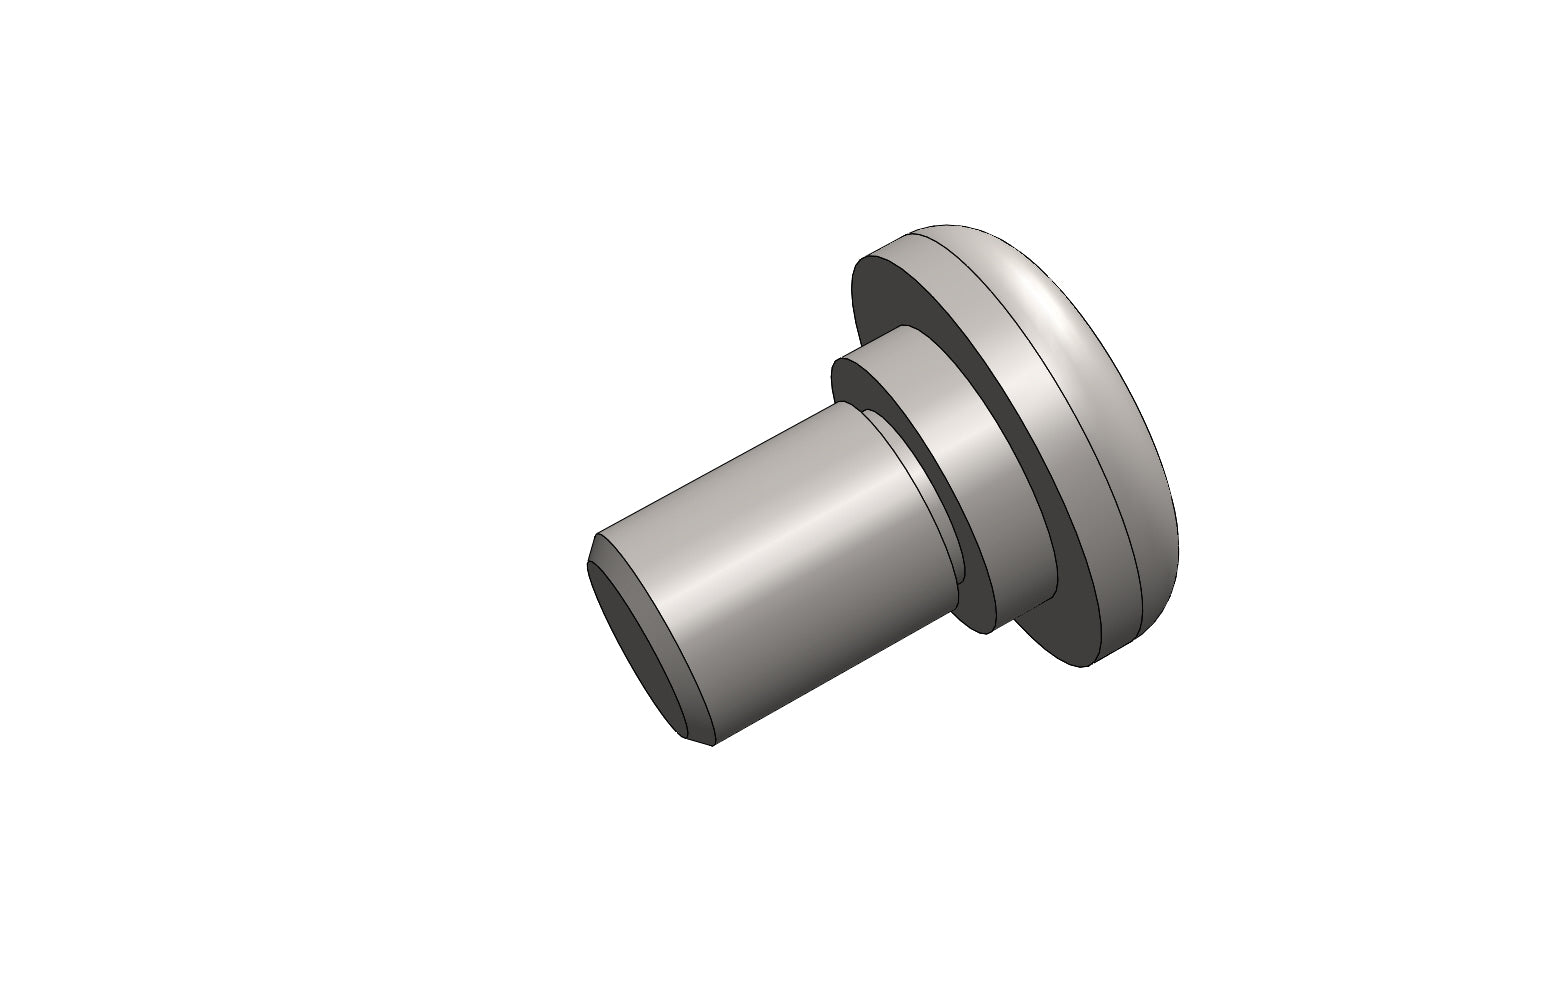 TC6271894A LOCATING PIN - King TC8 Spare Part